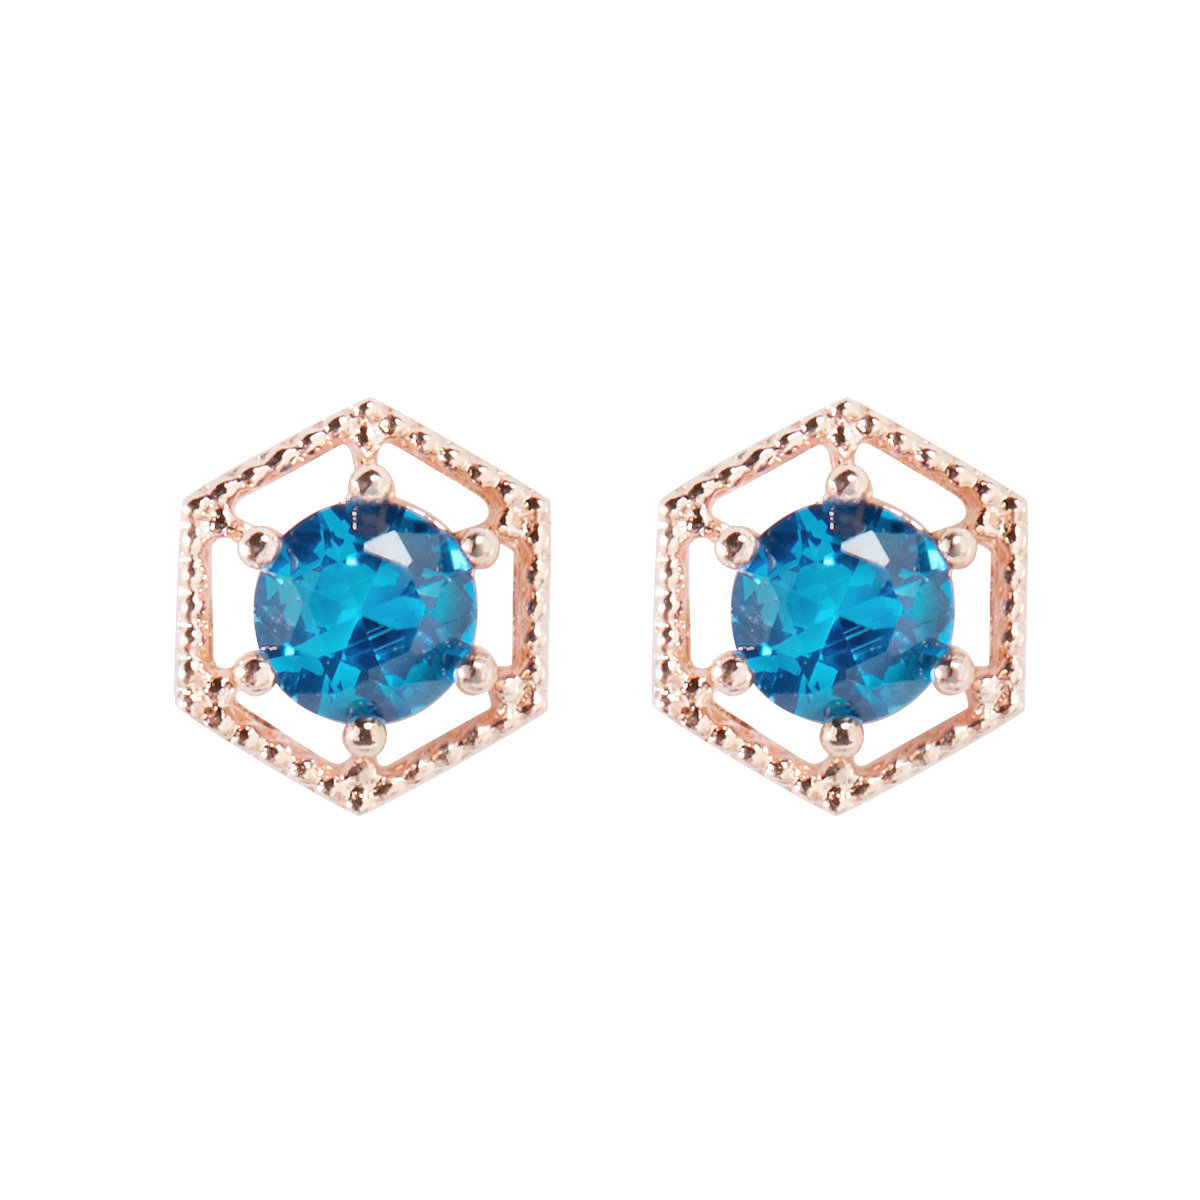 Hextagon earrings_FE5449